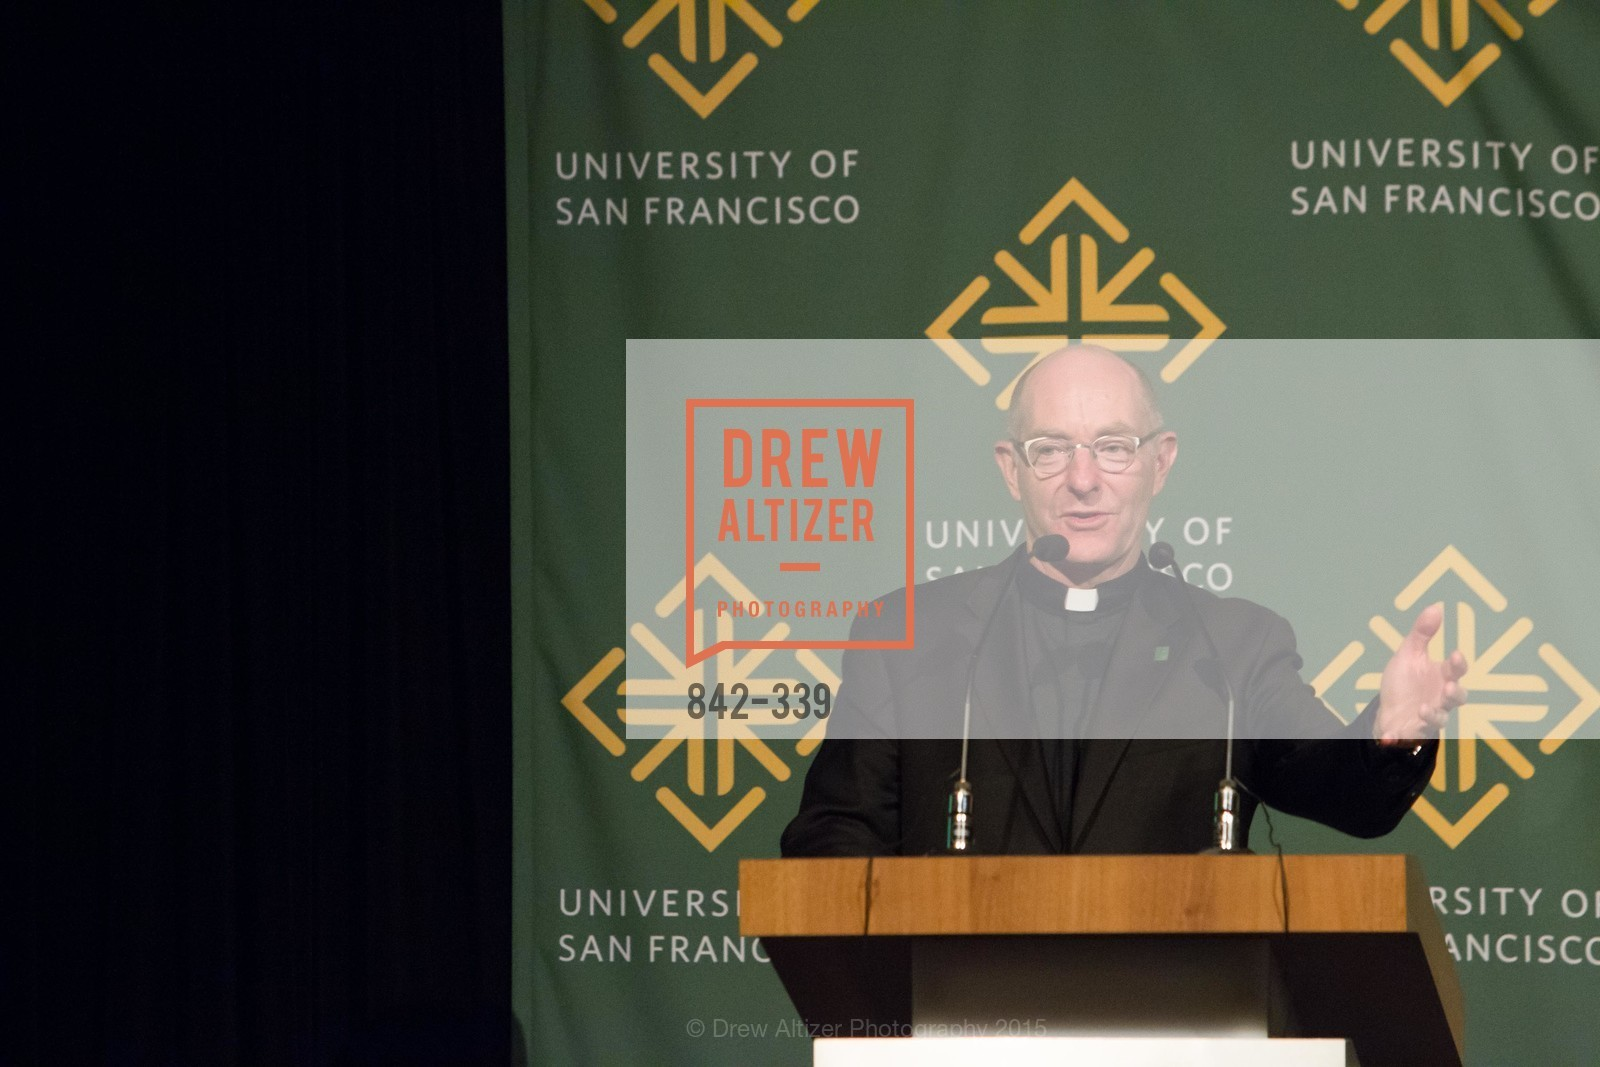 Paul Fitzgerald, University of San Francisco Alumni Awards Gala 2015, University of San Francisco, October 2nd, 2015,Drew Altizer, Drew Altizer Photography, full-service event agency, private events, San Francisco photographer, photographer California